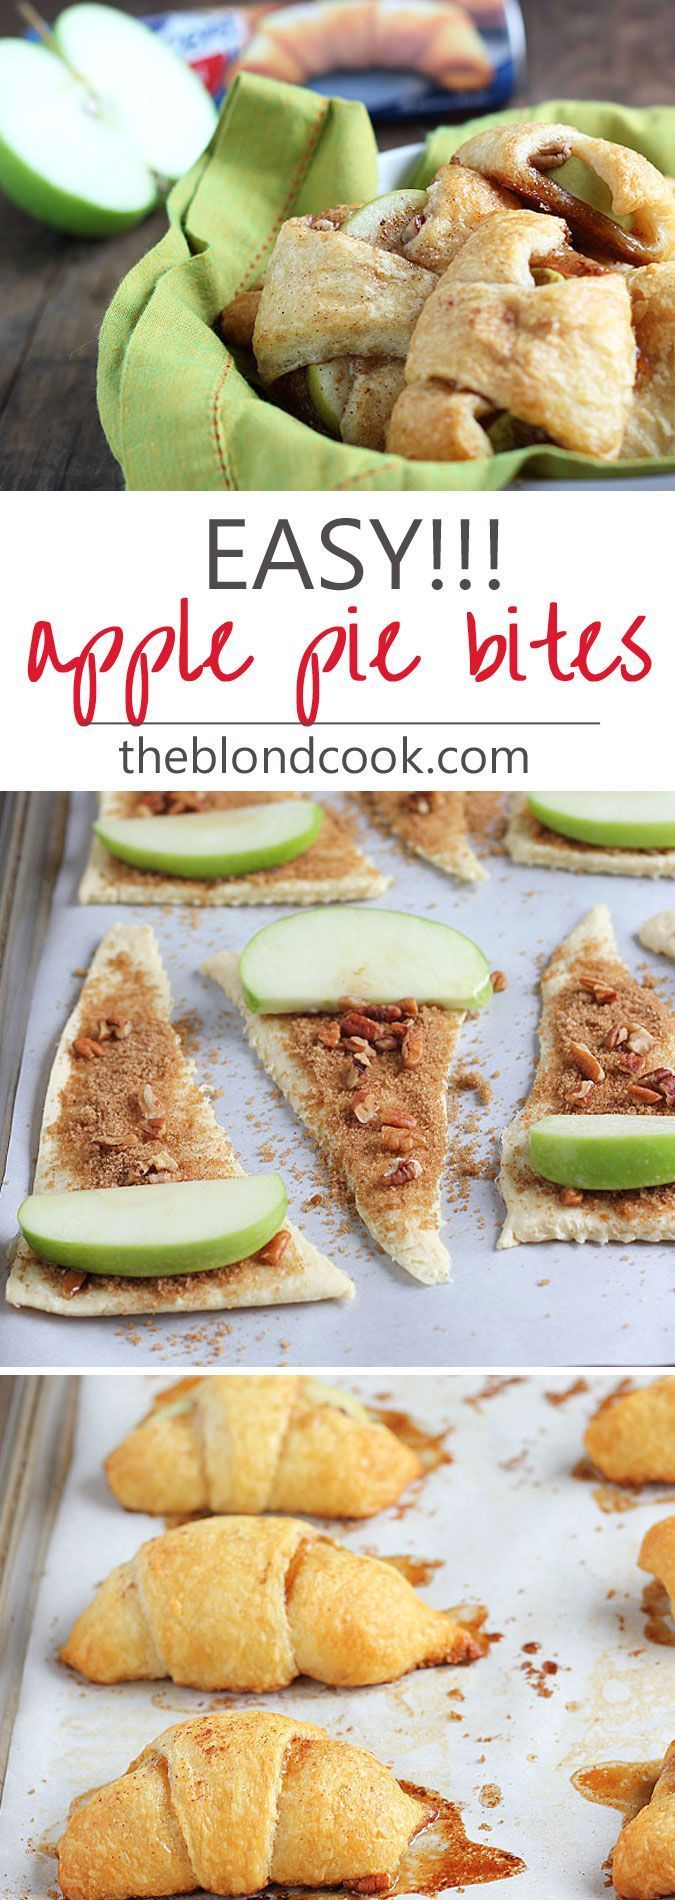 Een hele goede appeloogst dit jaar, dus tijd voor leuk appelhapjes. EASY Apple Pie Bites made with crescent rolls... these taste better than apple pie!